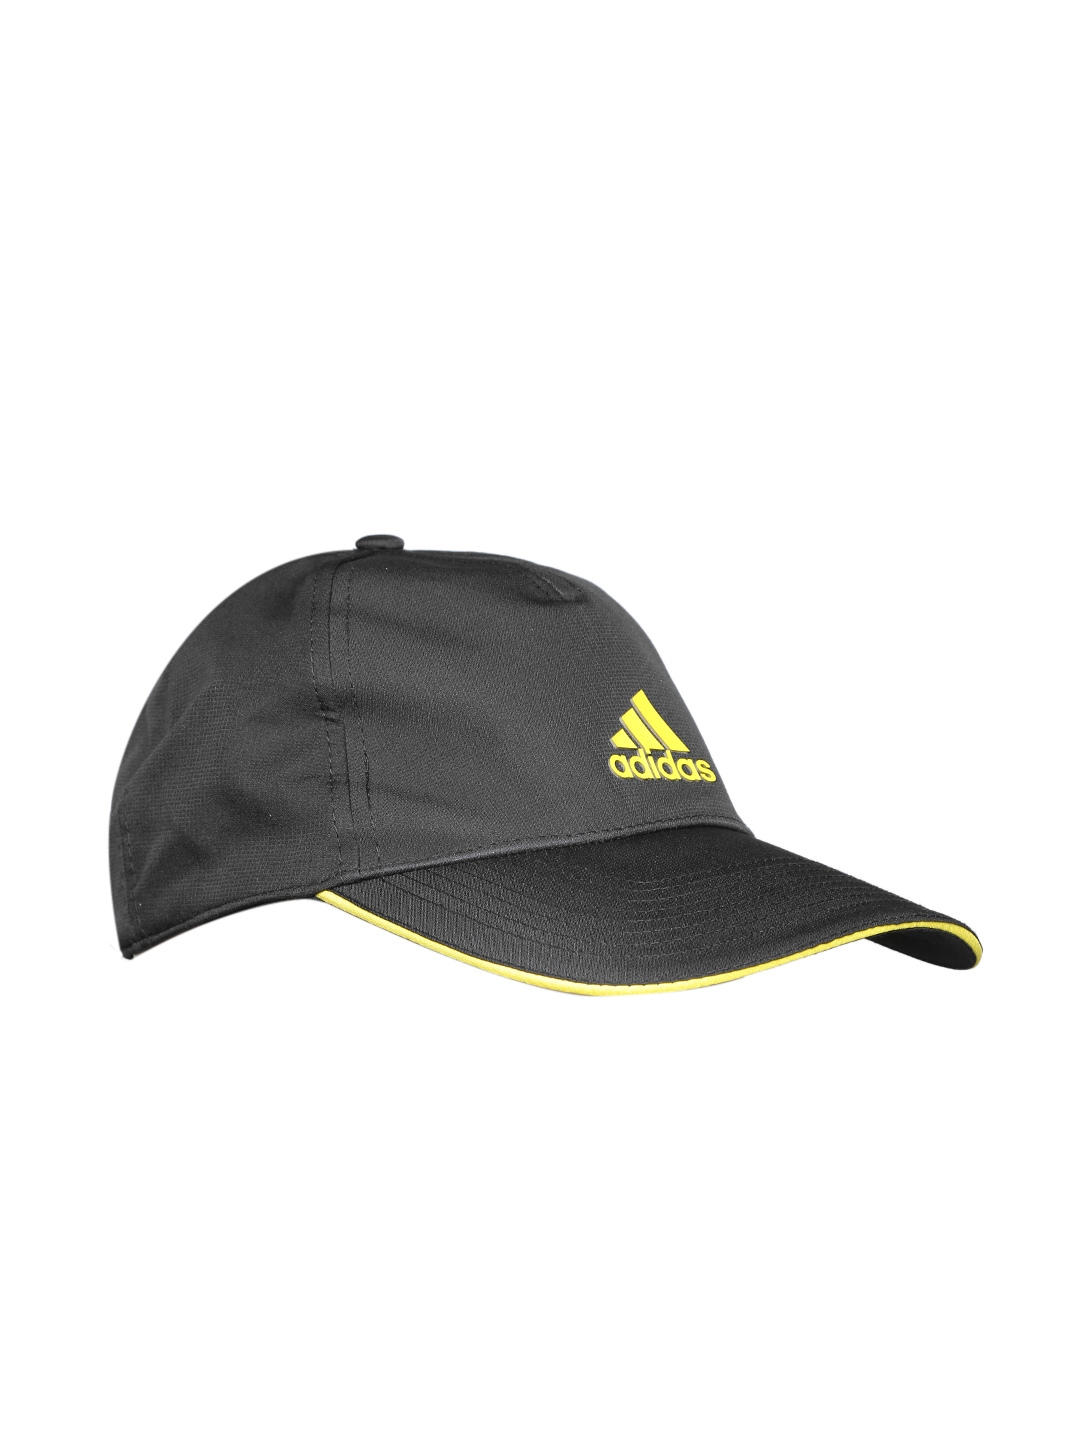 d1b160654a9 Buy ADIDAS Unisex Black 5Panel Clean ClimaLite Solid Cap - Caps for ...